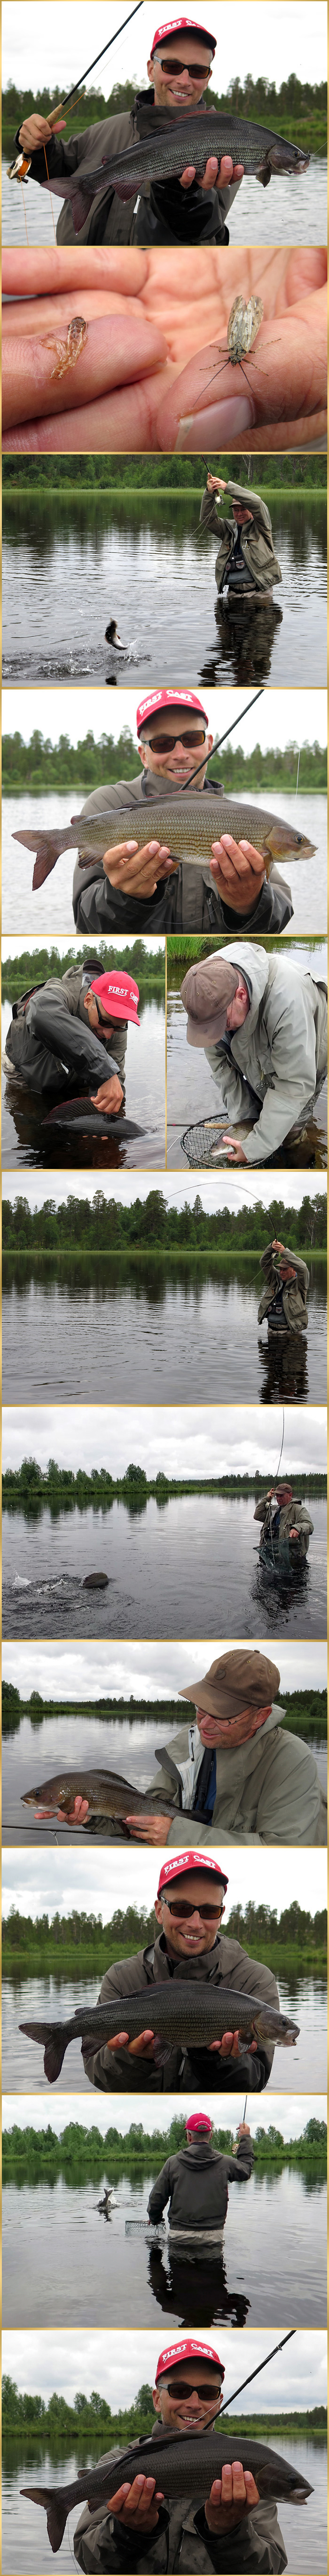 fly fishing grayling